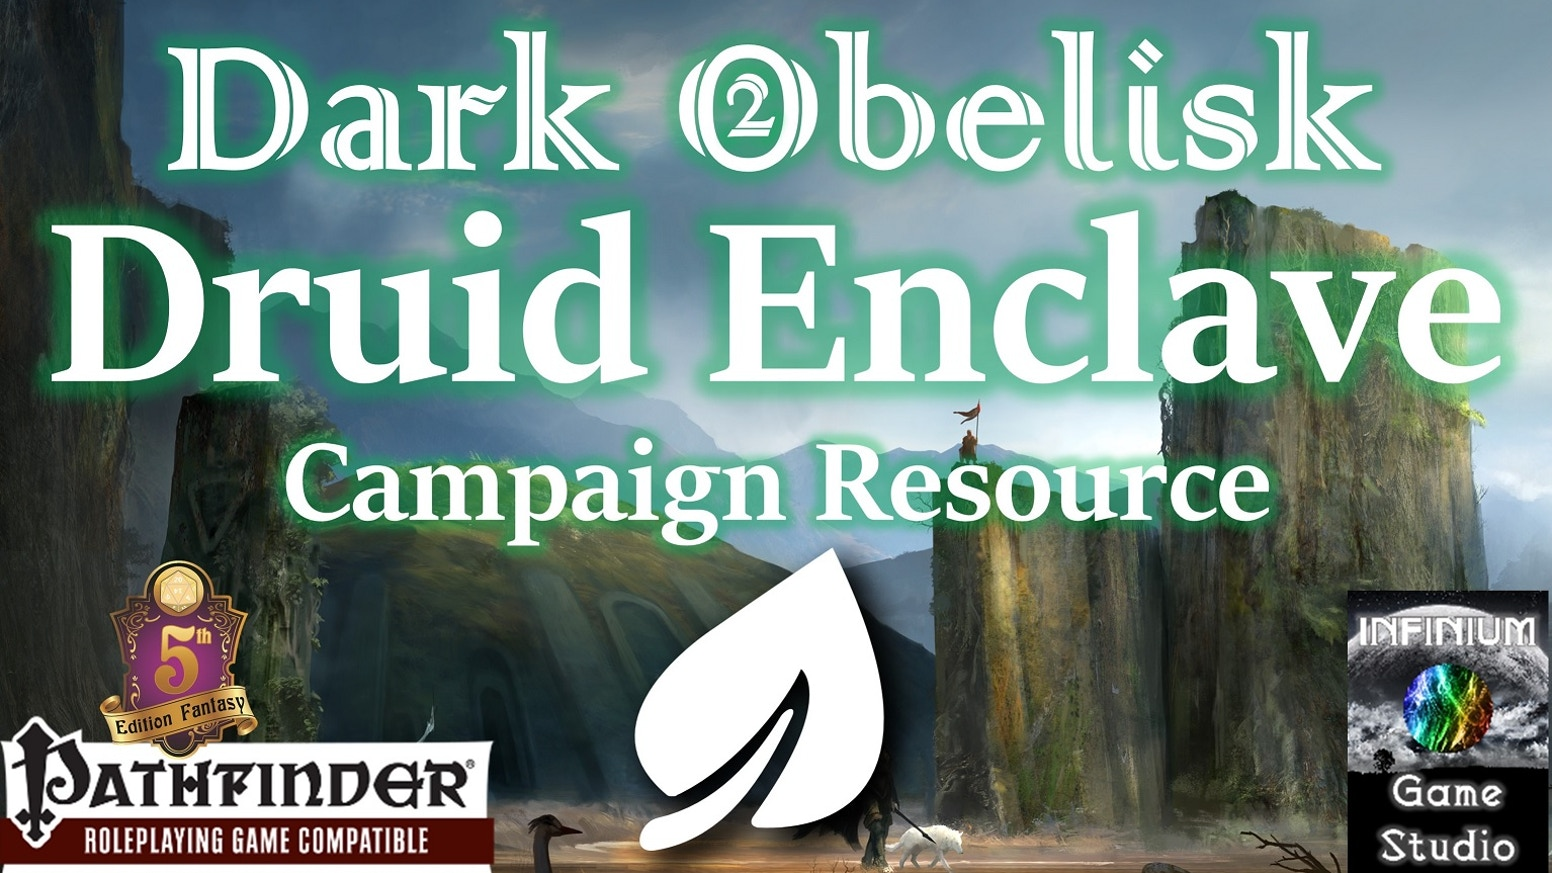 A richly-detailed RPG city campaign setting, the Druid Enclave from Dark Obelisk 2 has NPCs, Quests, lore, >100 maps, and much more!